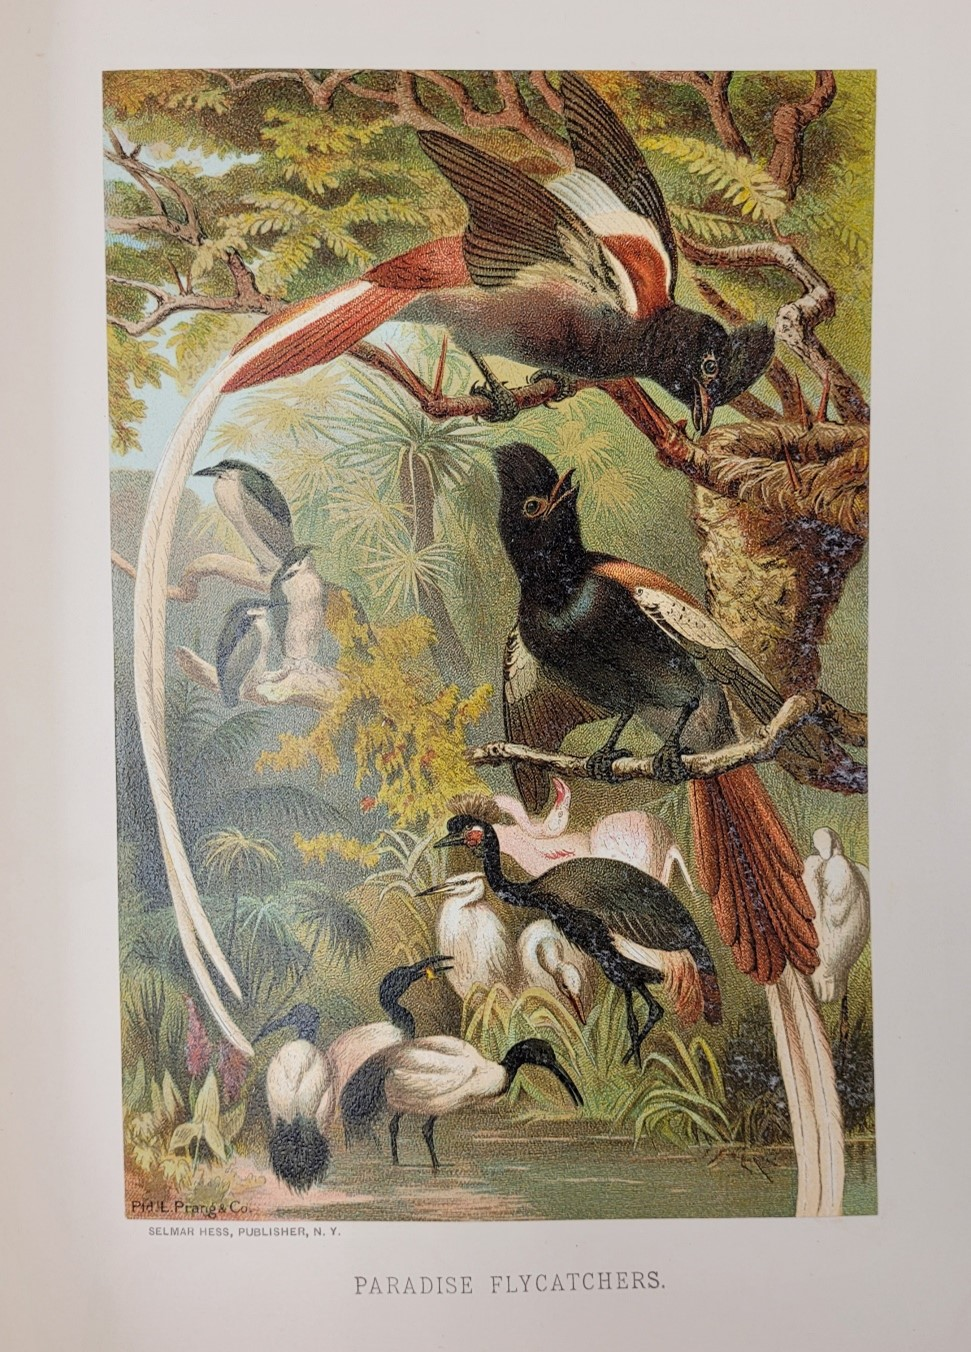 Image of the birds called Paradise Flycatchers in a nature scene with trees and other foliage